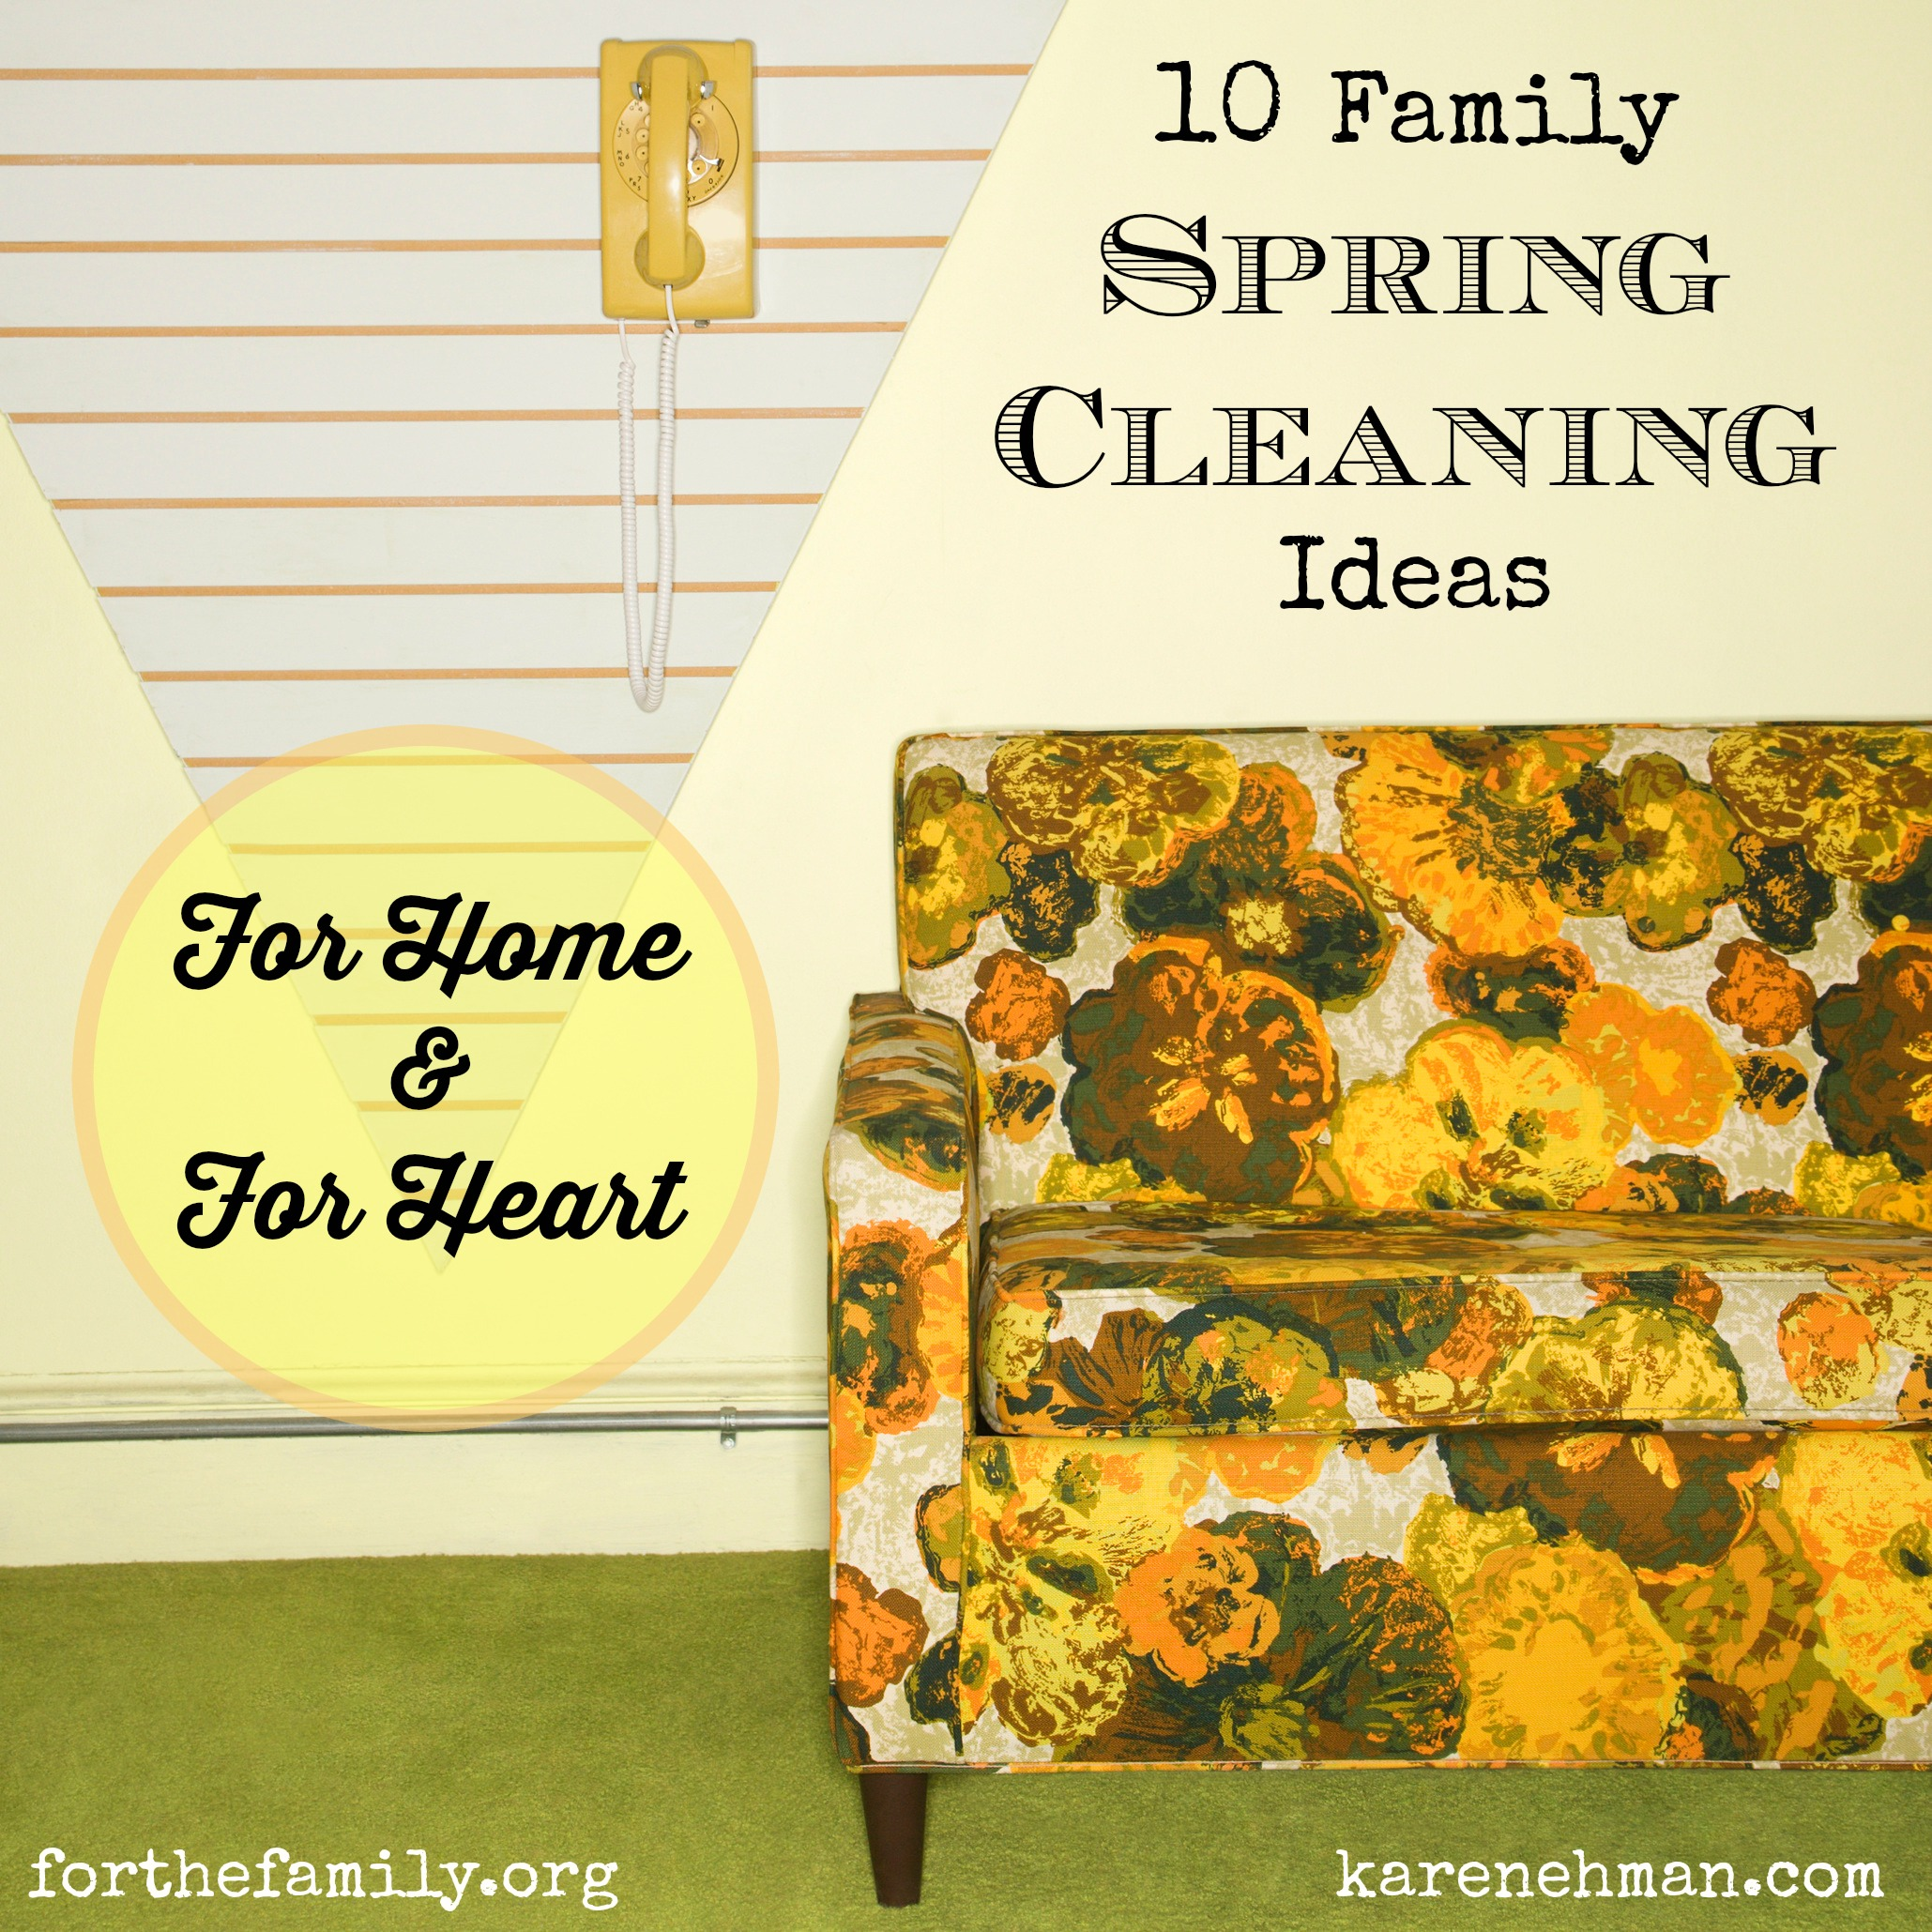 10 Family Spring Cleaning Ideas {for Home & For Heart}